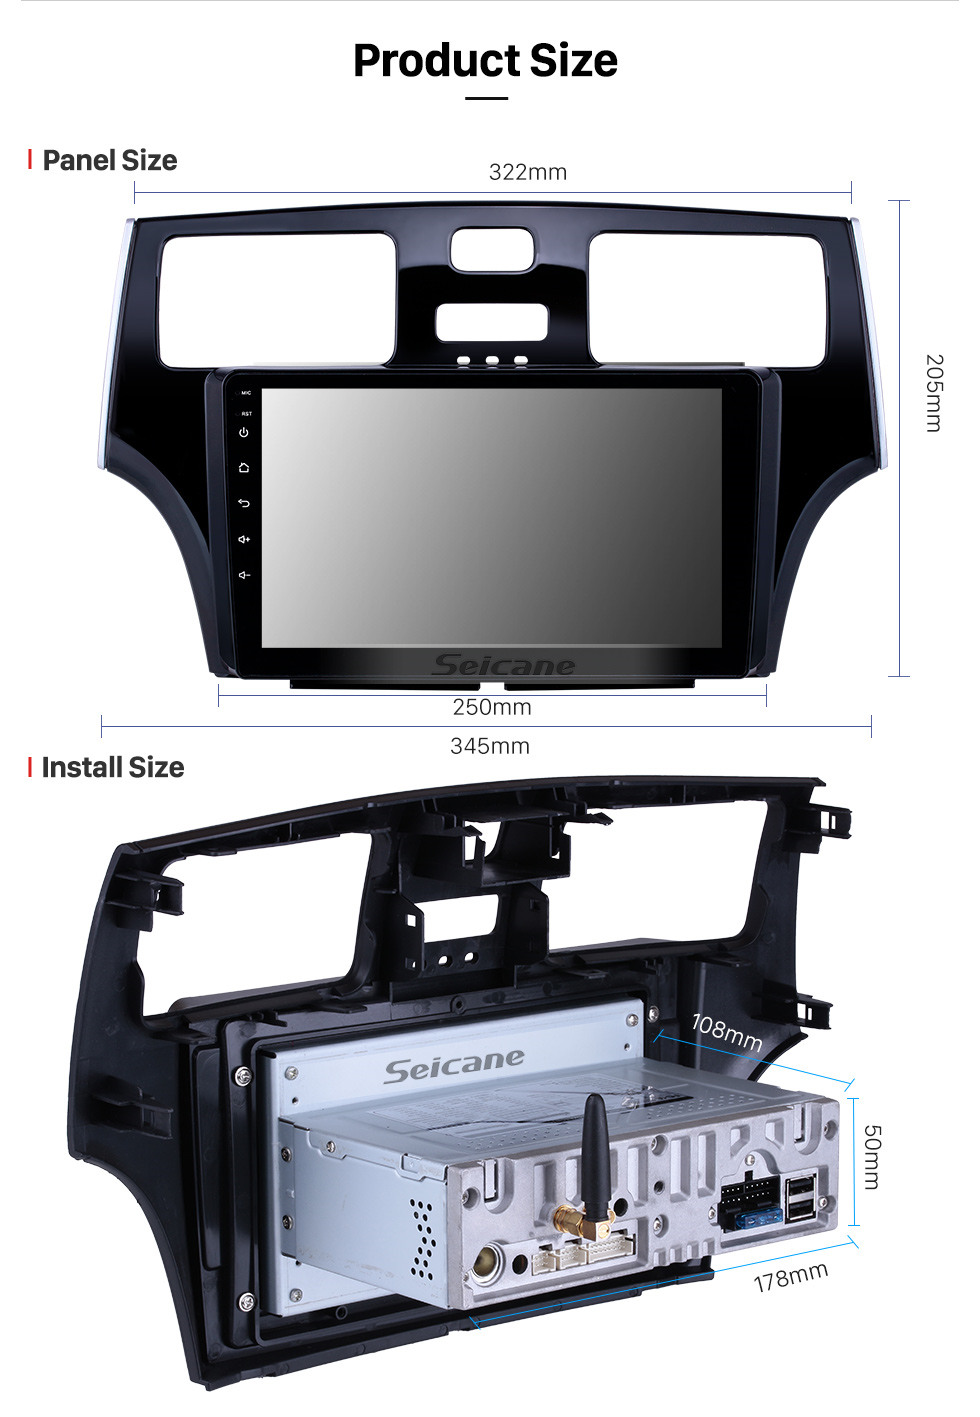 Seicane 9 inch HD Touchscreen Radio for 2001 2002 2003 2004 2005 Lexus ES300 Android 10.0 GPS Navigation Multimedia Bluetooth Phone SWC WIFI USB Carplay Rearview DVR 1080P Video